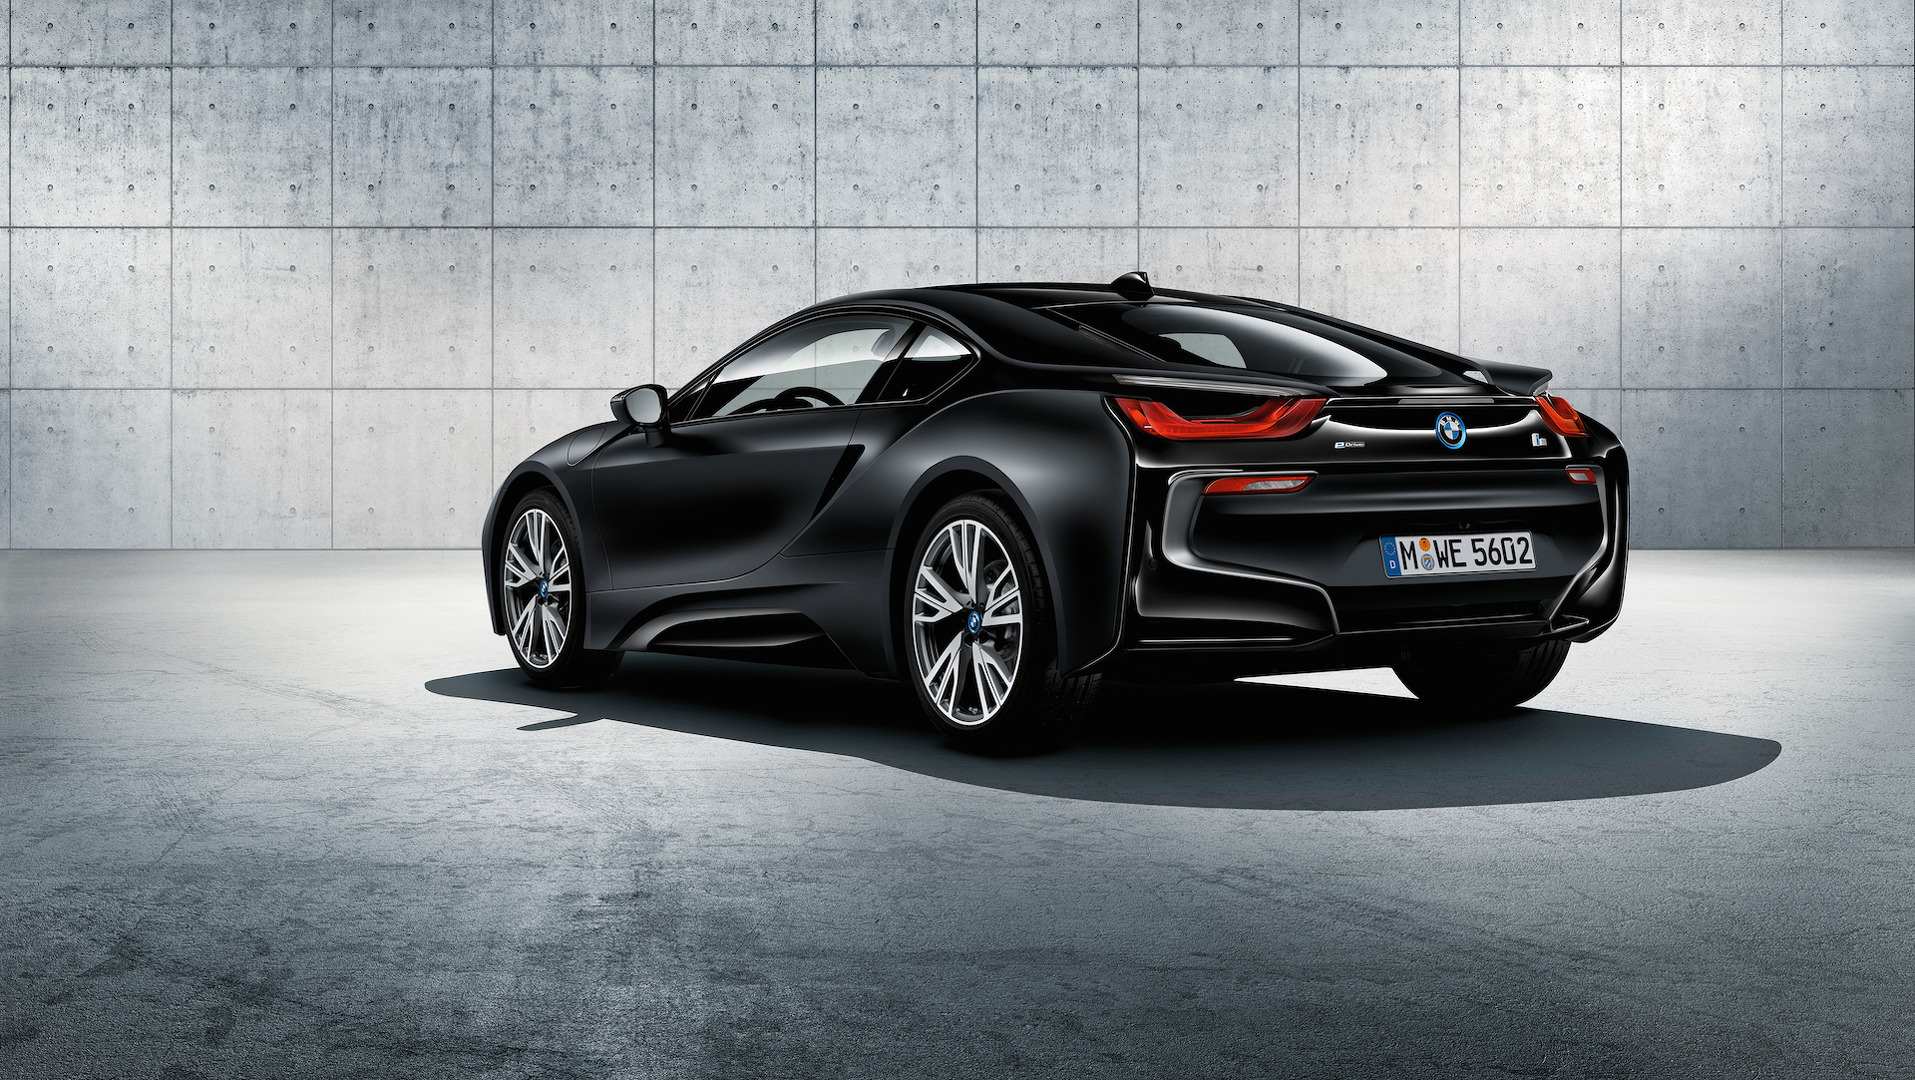 bmw-i8-frozen-black-and-yellow (9).jpg